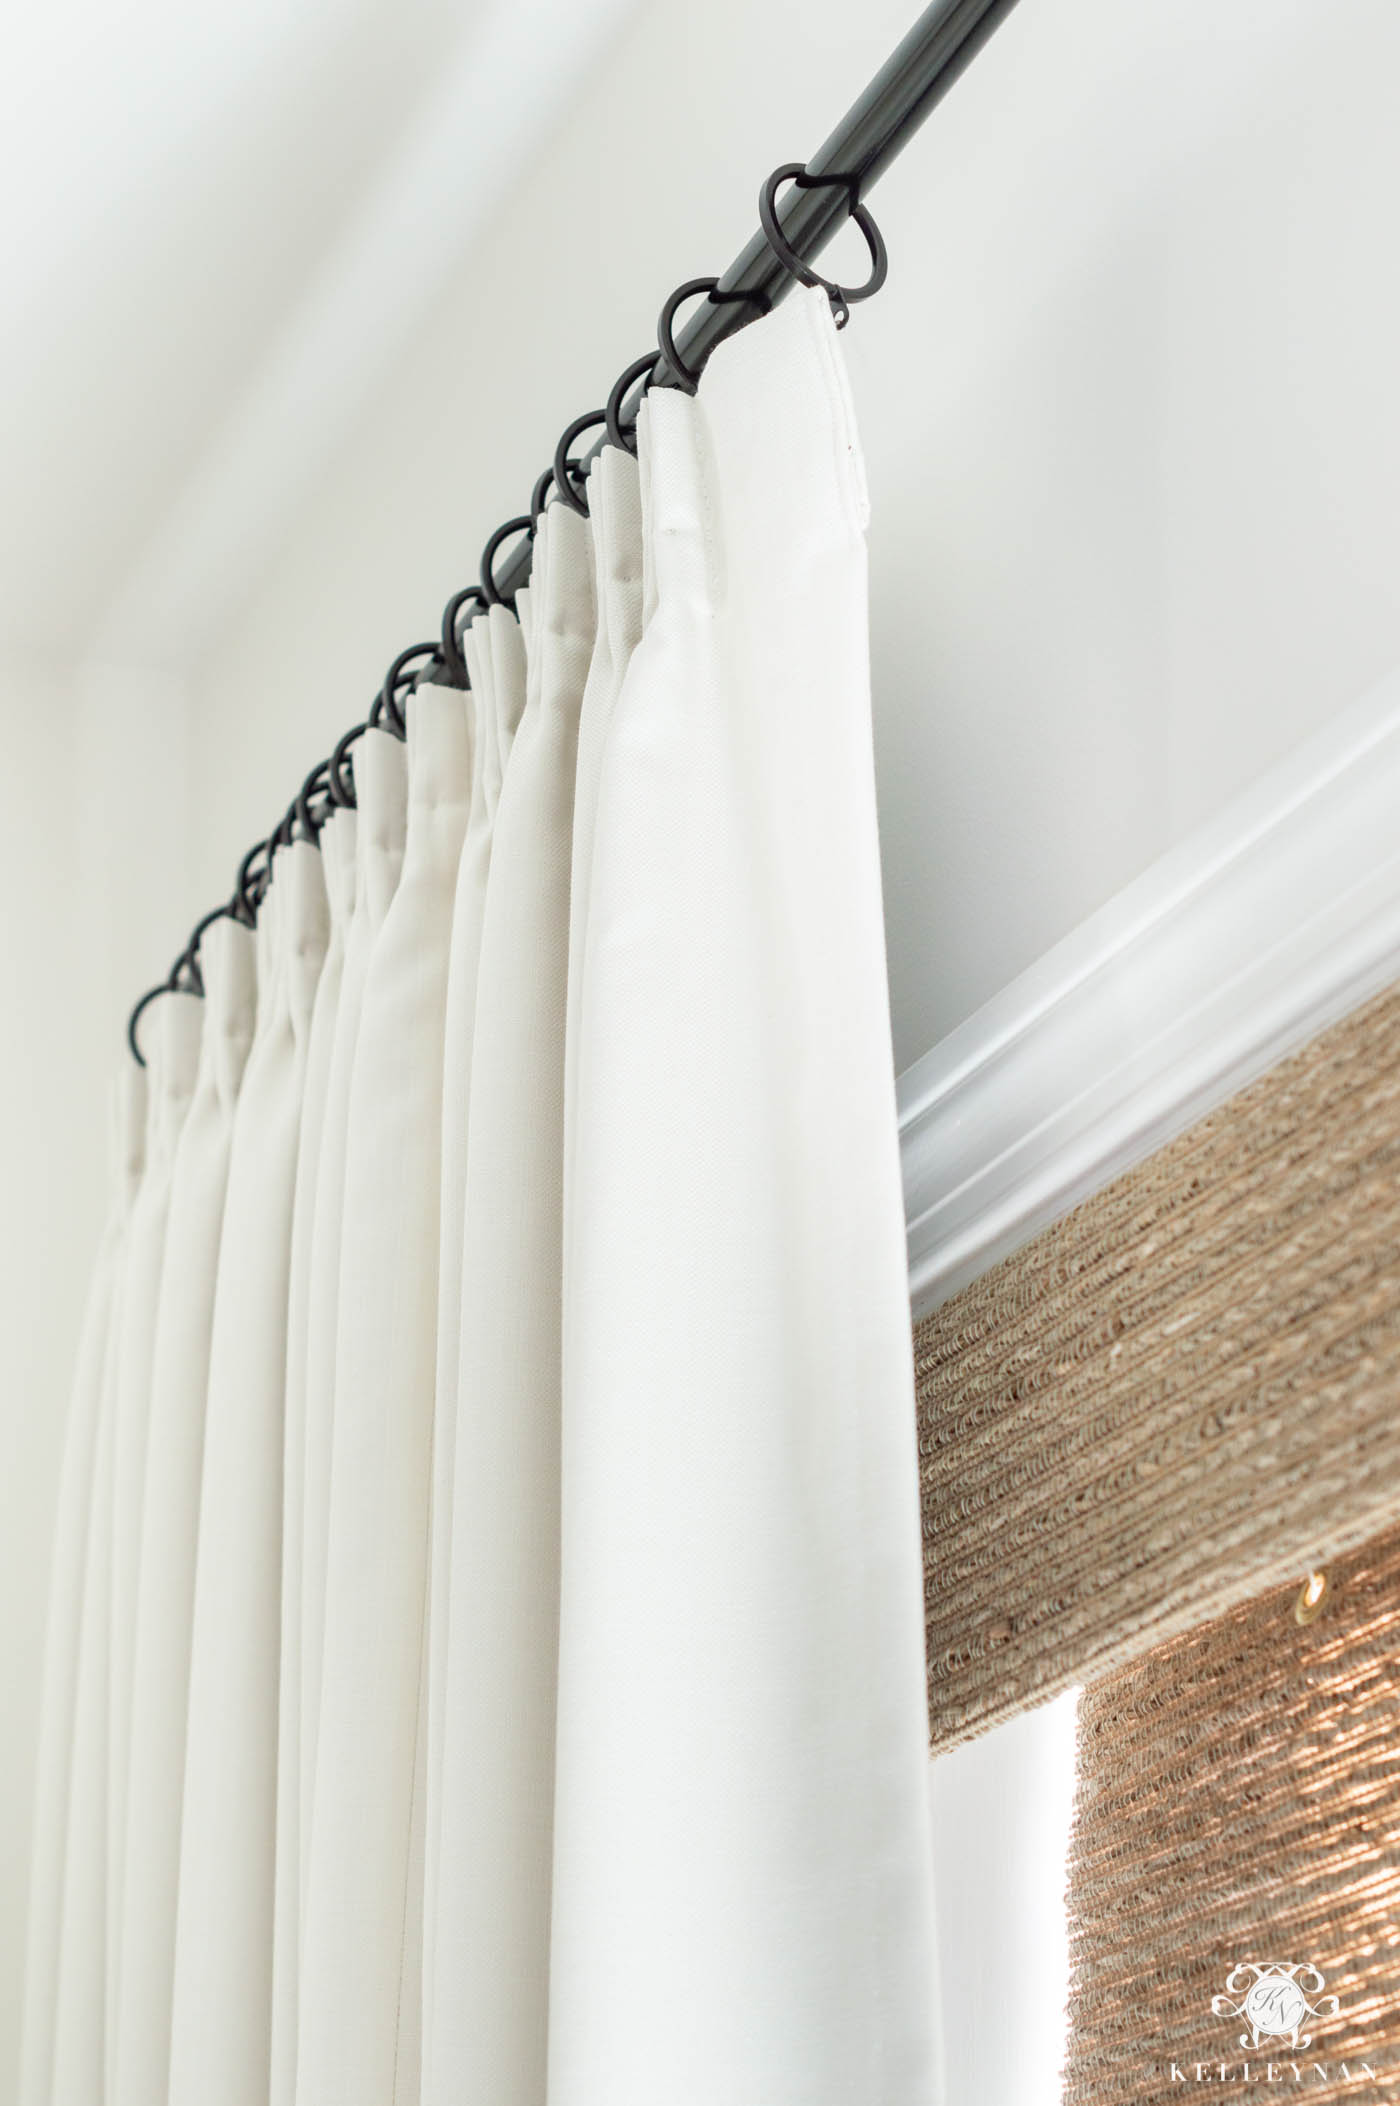 Bedroom Window Treatments -- Pleated Drapes with Woven Shades